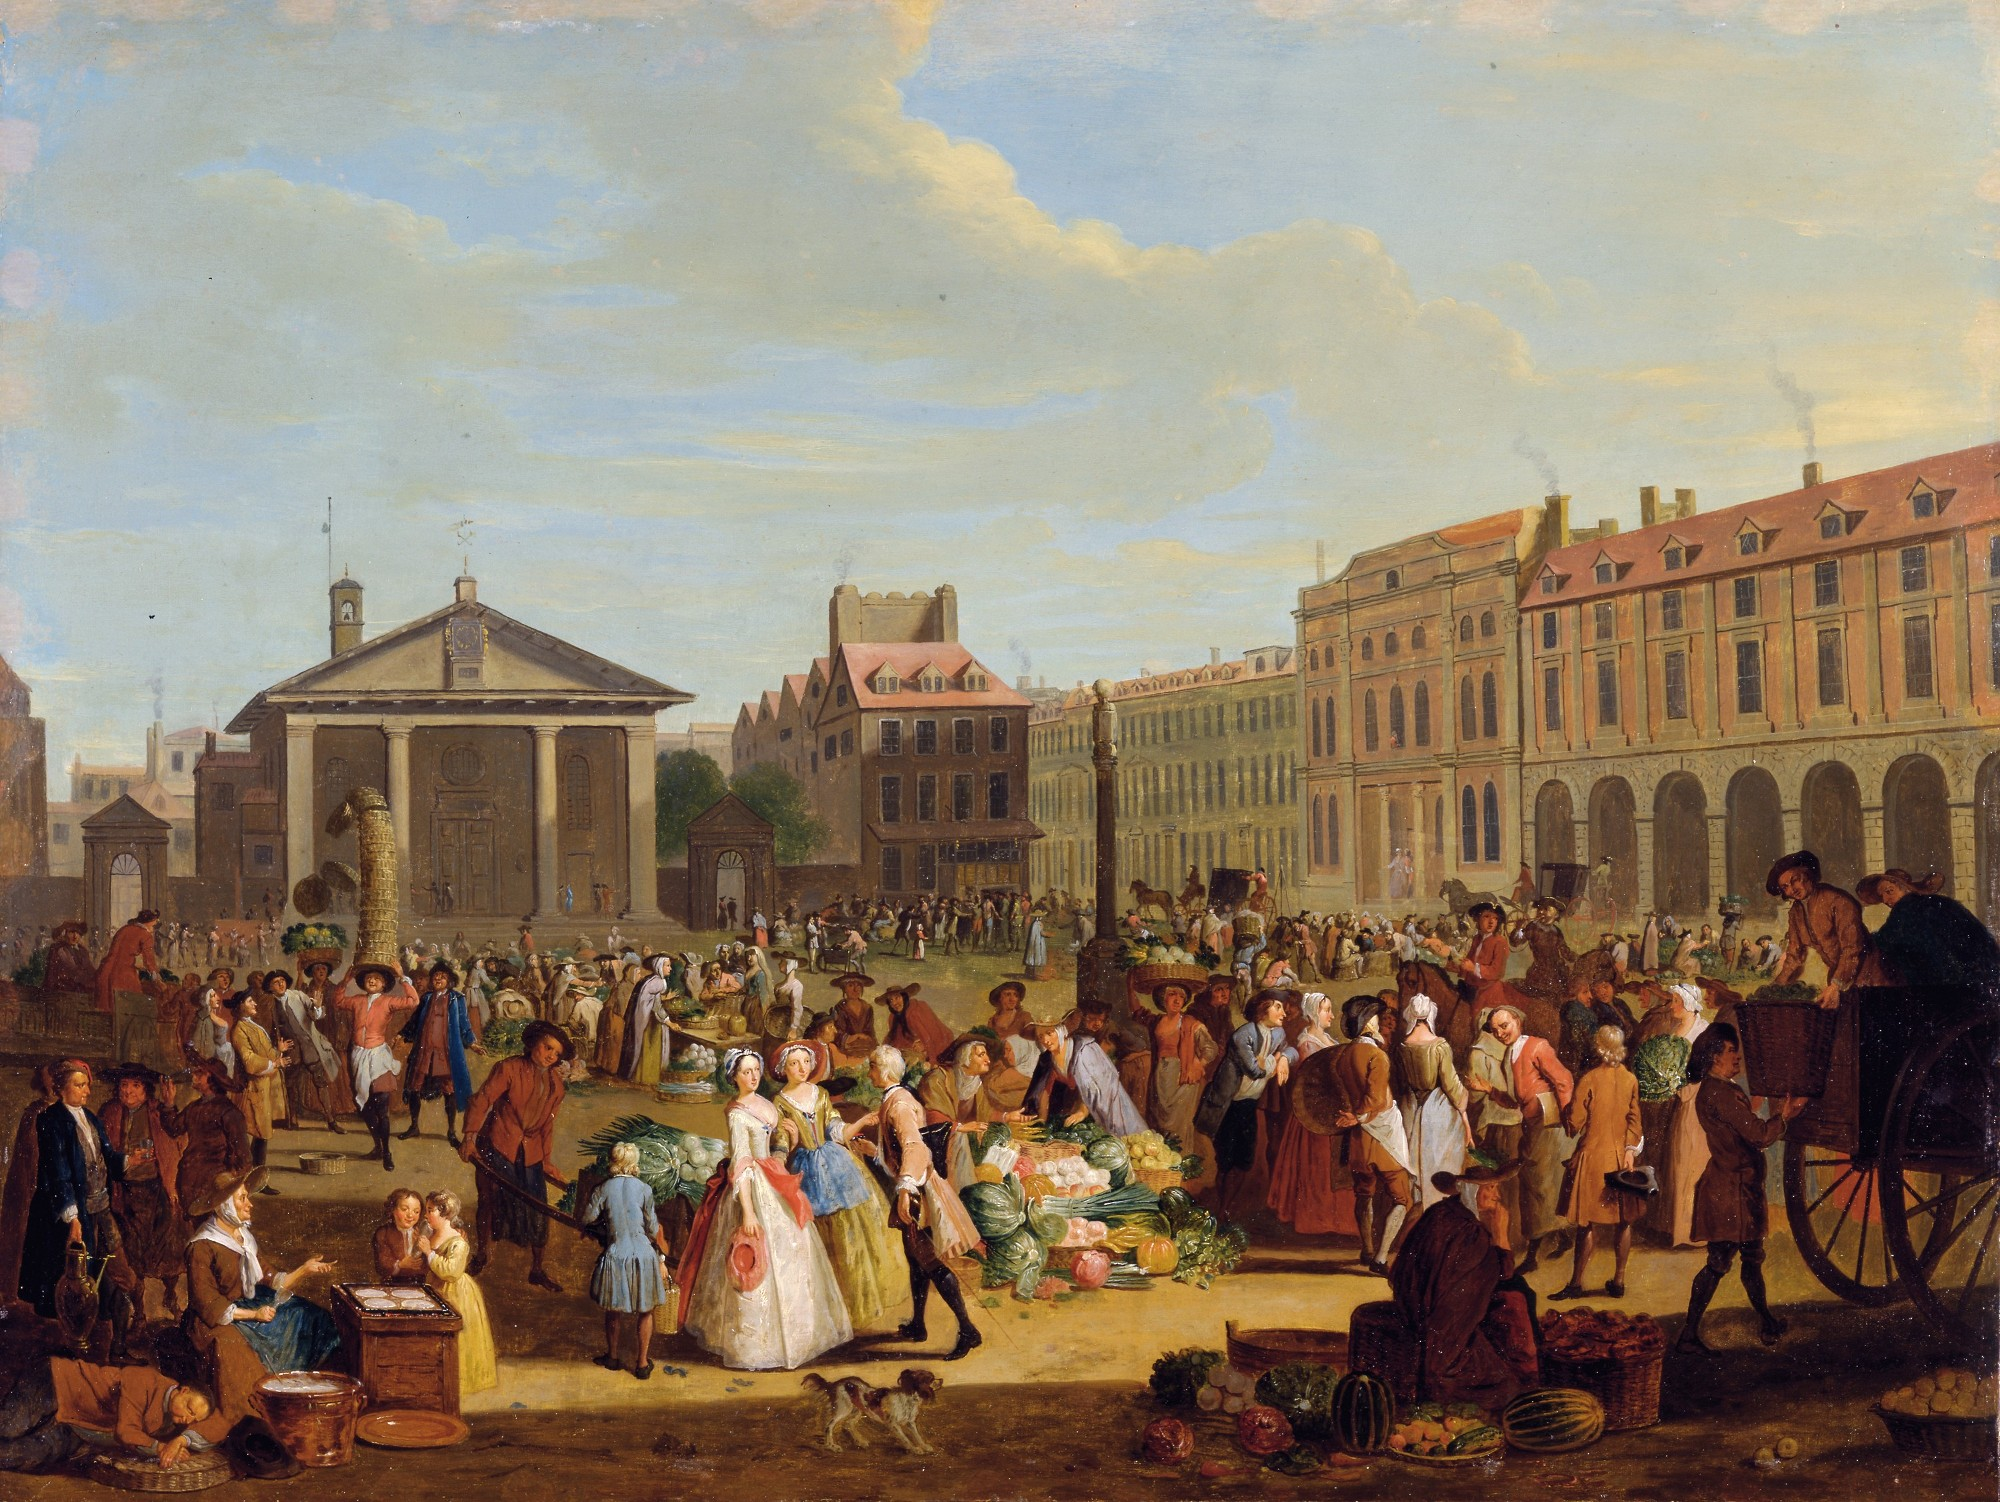 Market at Covent Garden - Pieter Angillis 1726 - The Townsends Blog